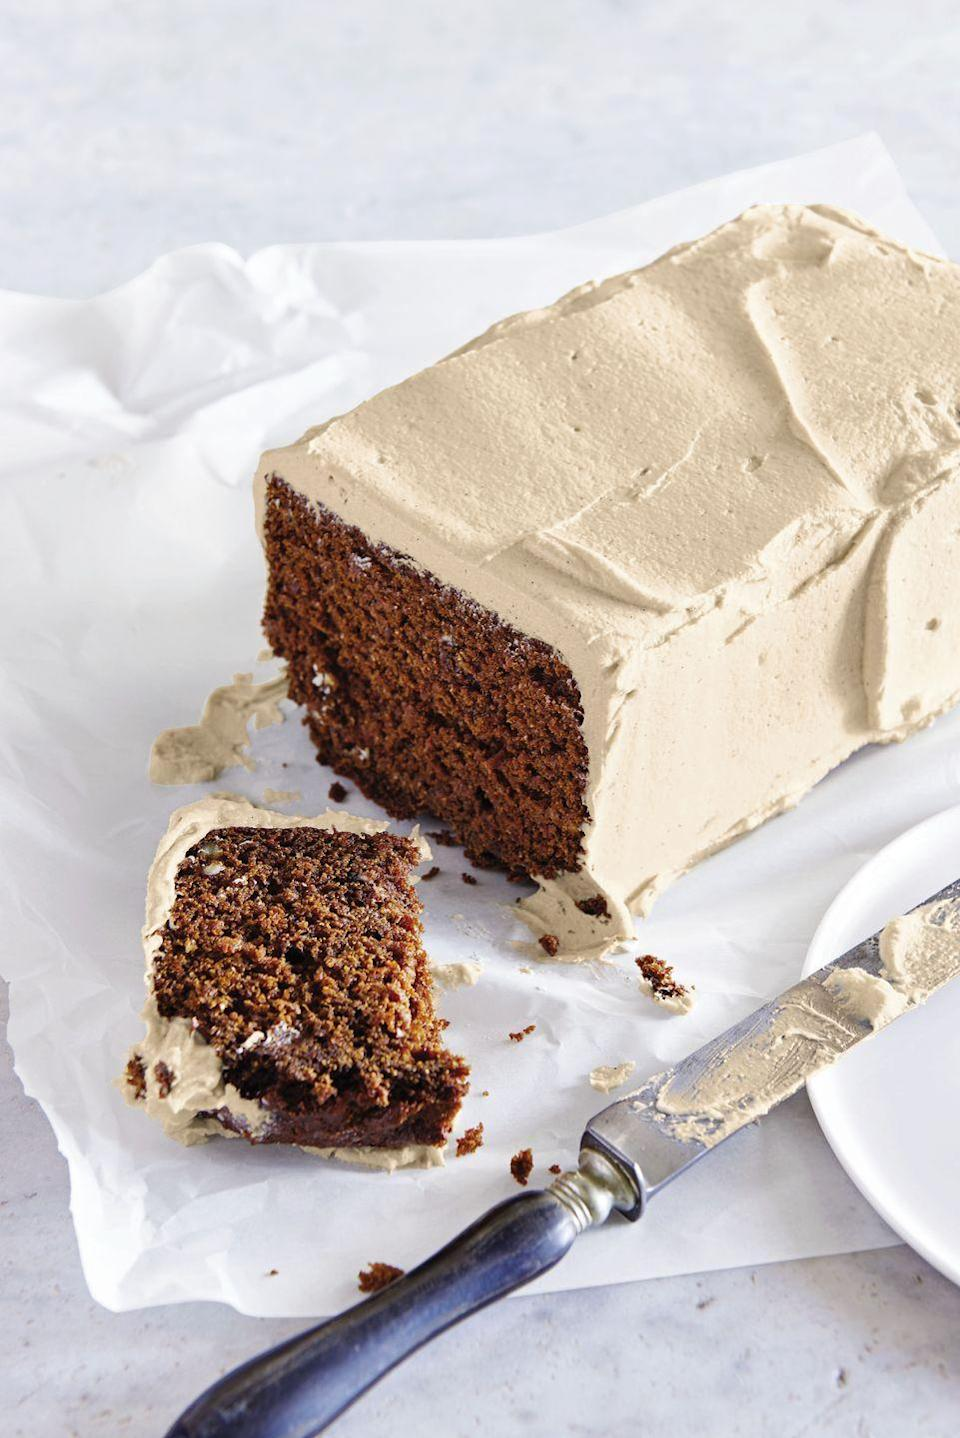 """<p>This quick and easy dessert is proof that complicated, three-tiered layer cakes are overrated. </p><p><em><a href=""""https://www.goodhousekeeping.com/food-recipes/dessert/a40367/outlaw-carrot-cake-with-brown-sugar-butter-cream-recipe/"""" rel=""""nofollow noopener"""" target=""""_blank"""" data-ylk=""""slk:Get the recipe for Outlaw Carrot Cake with Brown Sugar Butter Cream »"""" class=""""link rapid-noclick-resp"""">Get the recipe for Outlaw Carrot Cake with Brown Sugar Butter Cream »</a></em> </p>"""